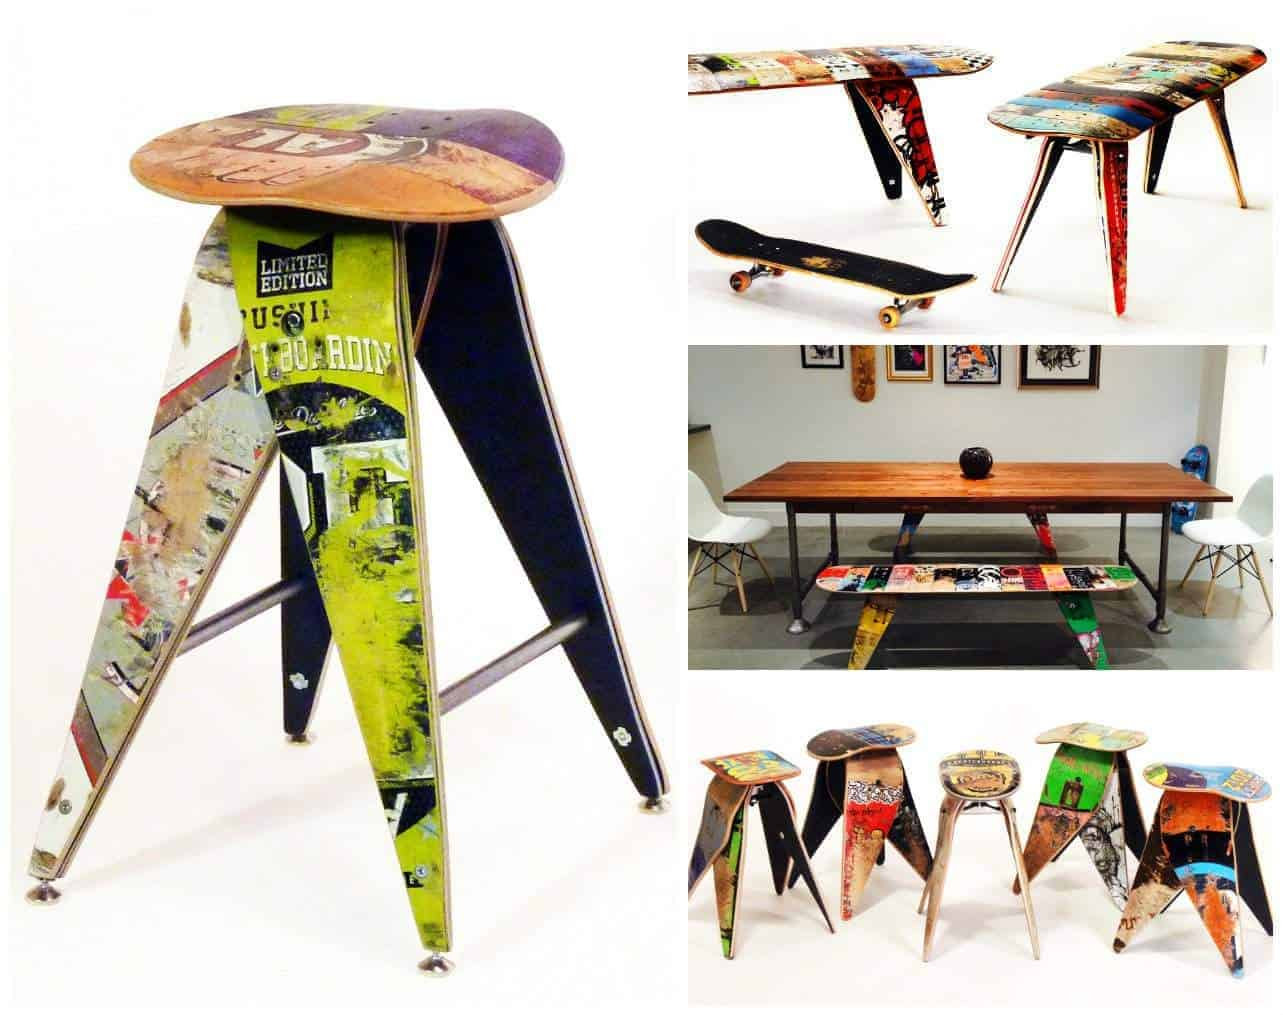 Do It Yourself Home Design: Skateboard Decks Upcycled Into Benches & Stools • Recyclart